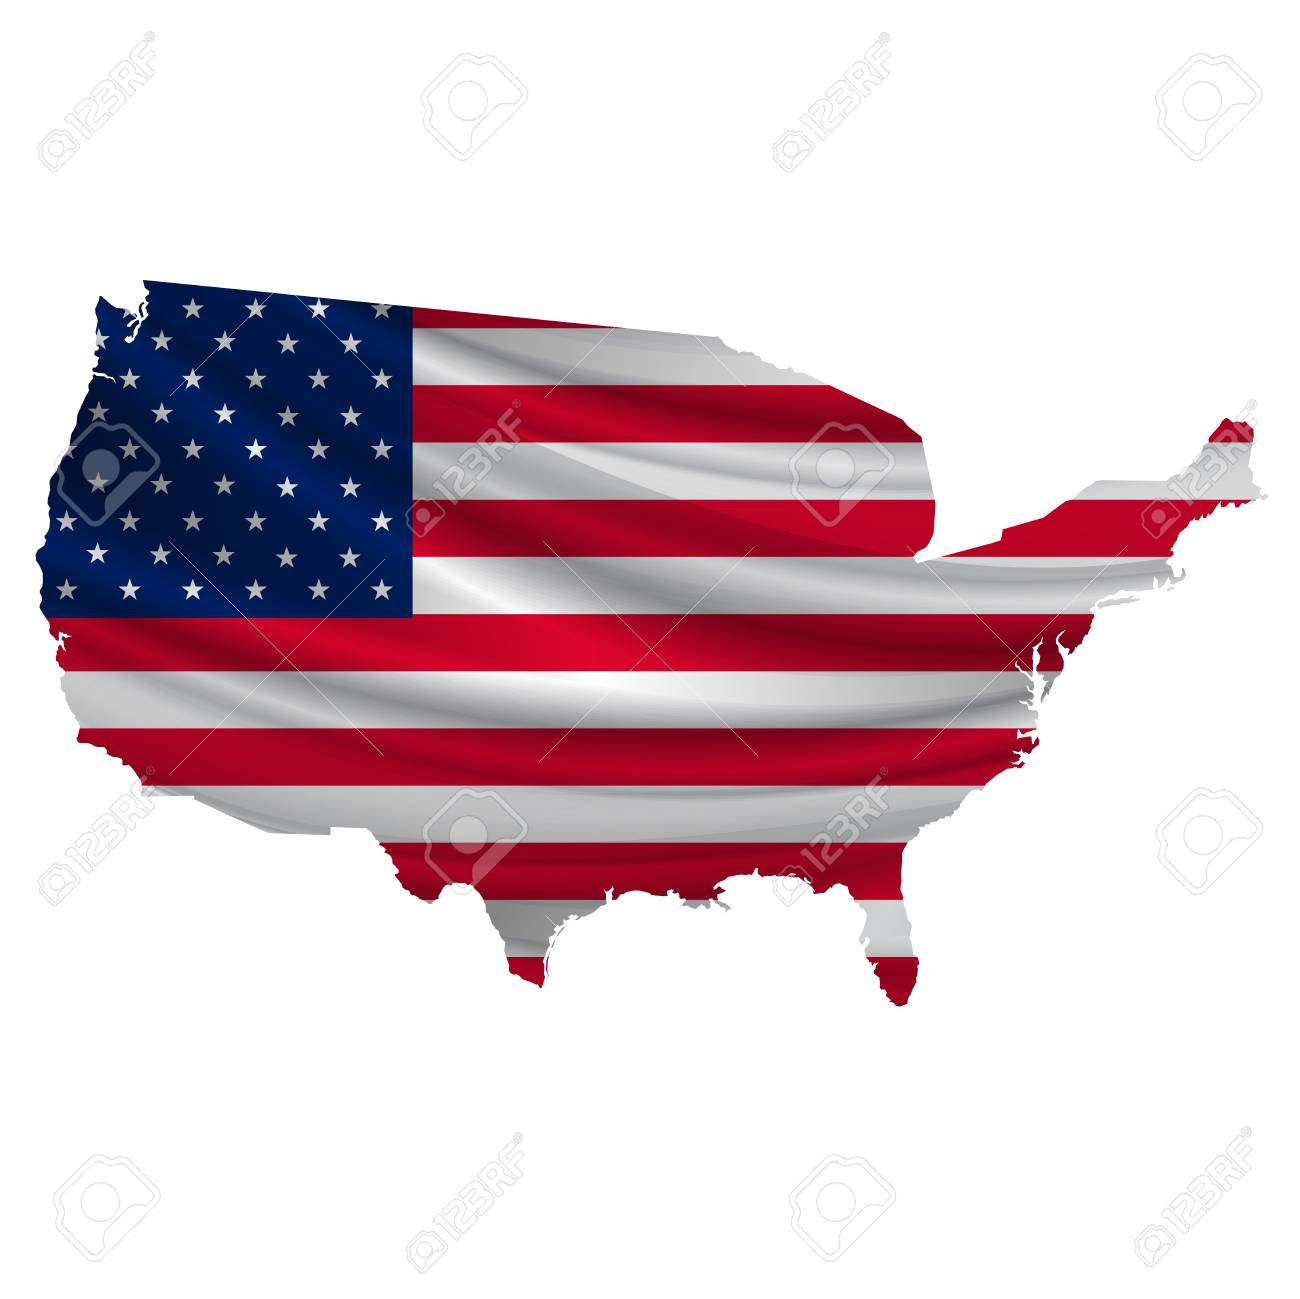 hight resolution of america flag map icon stock vector 54616048